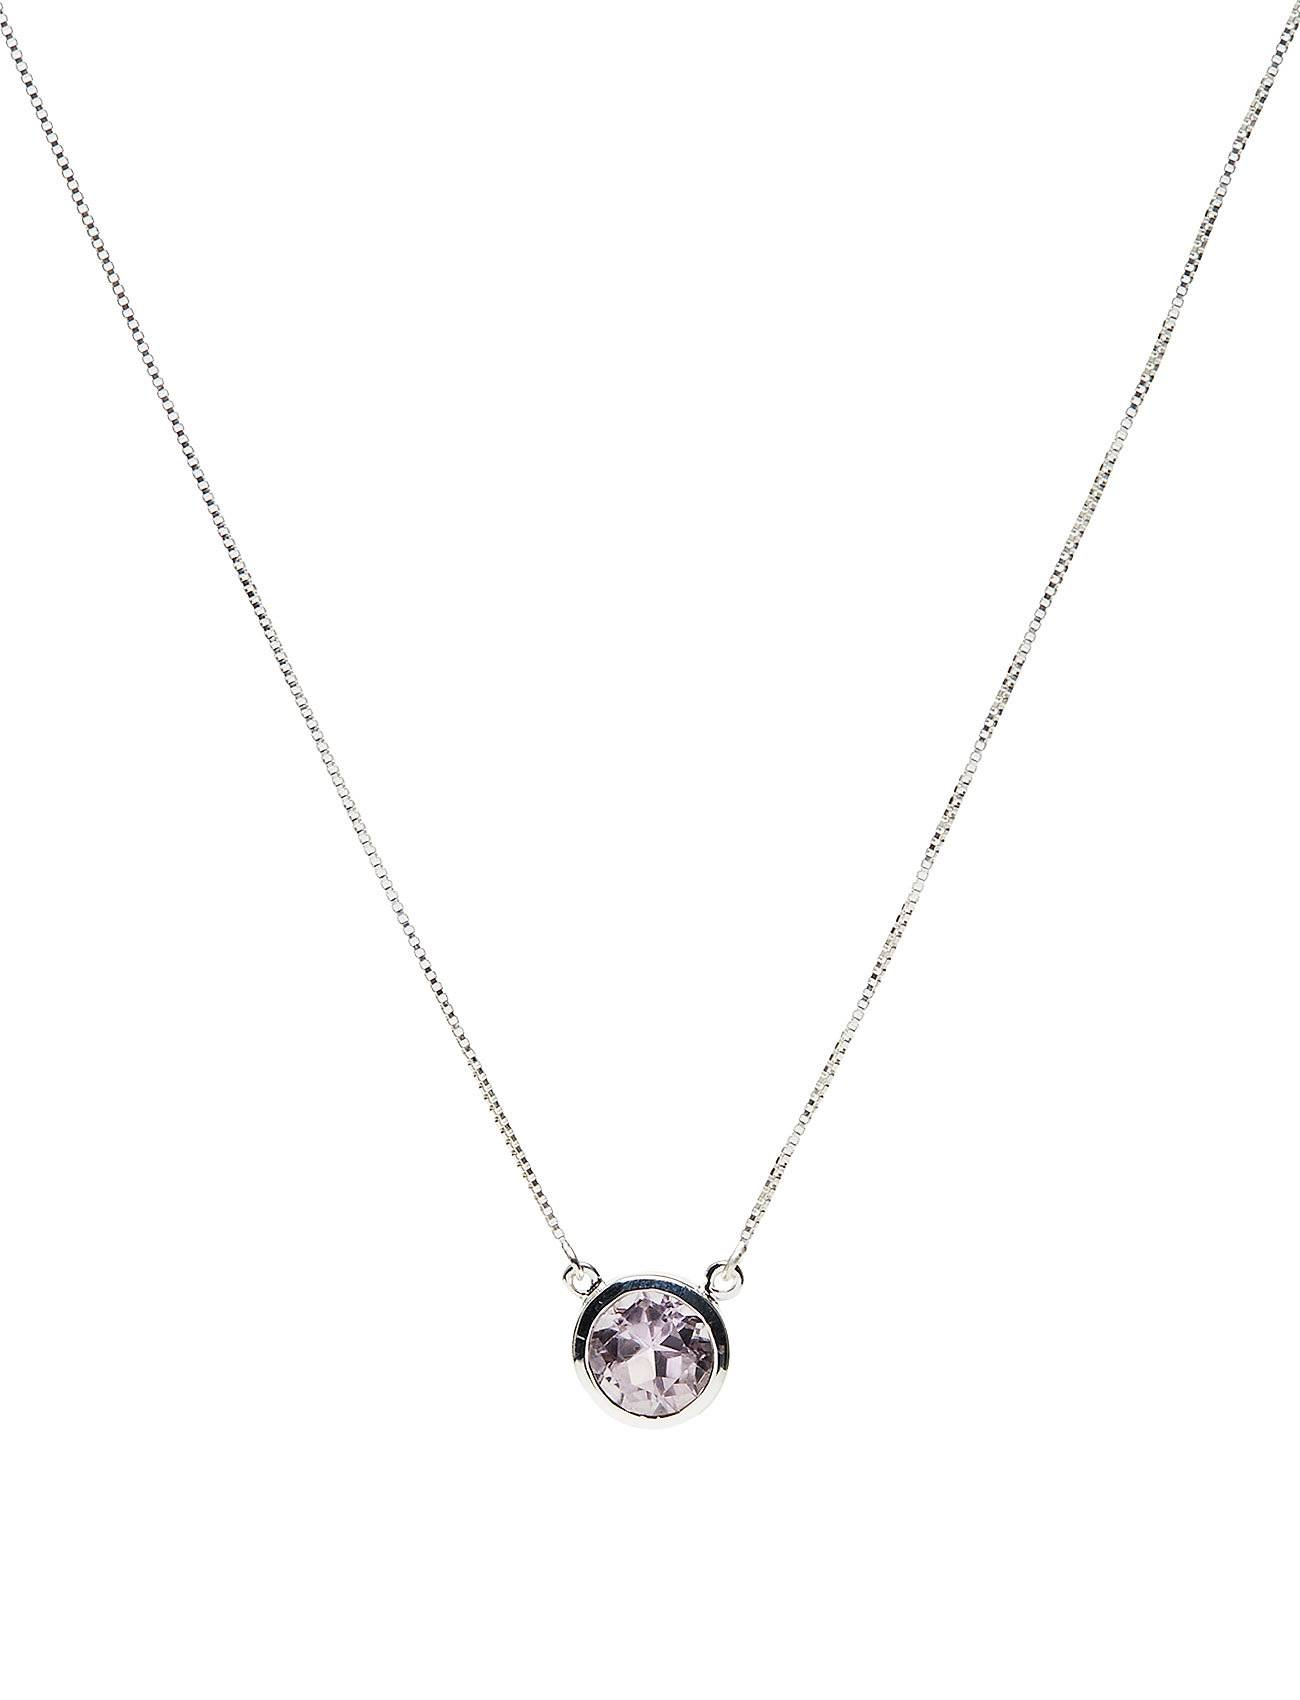 Syster P Lone Star Necklace Pink Amethyst, Silver